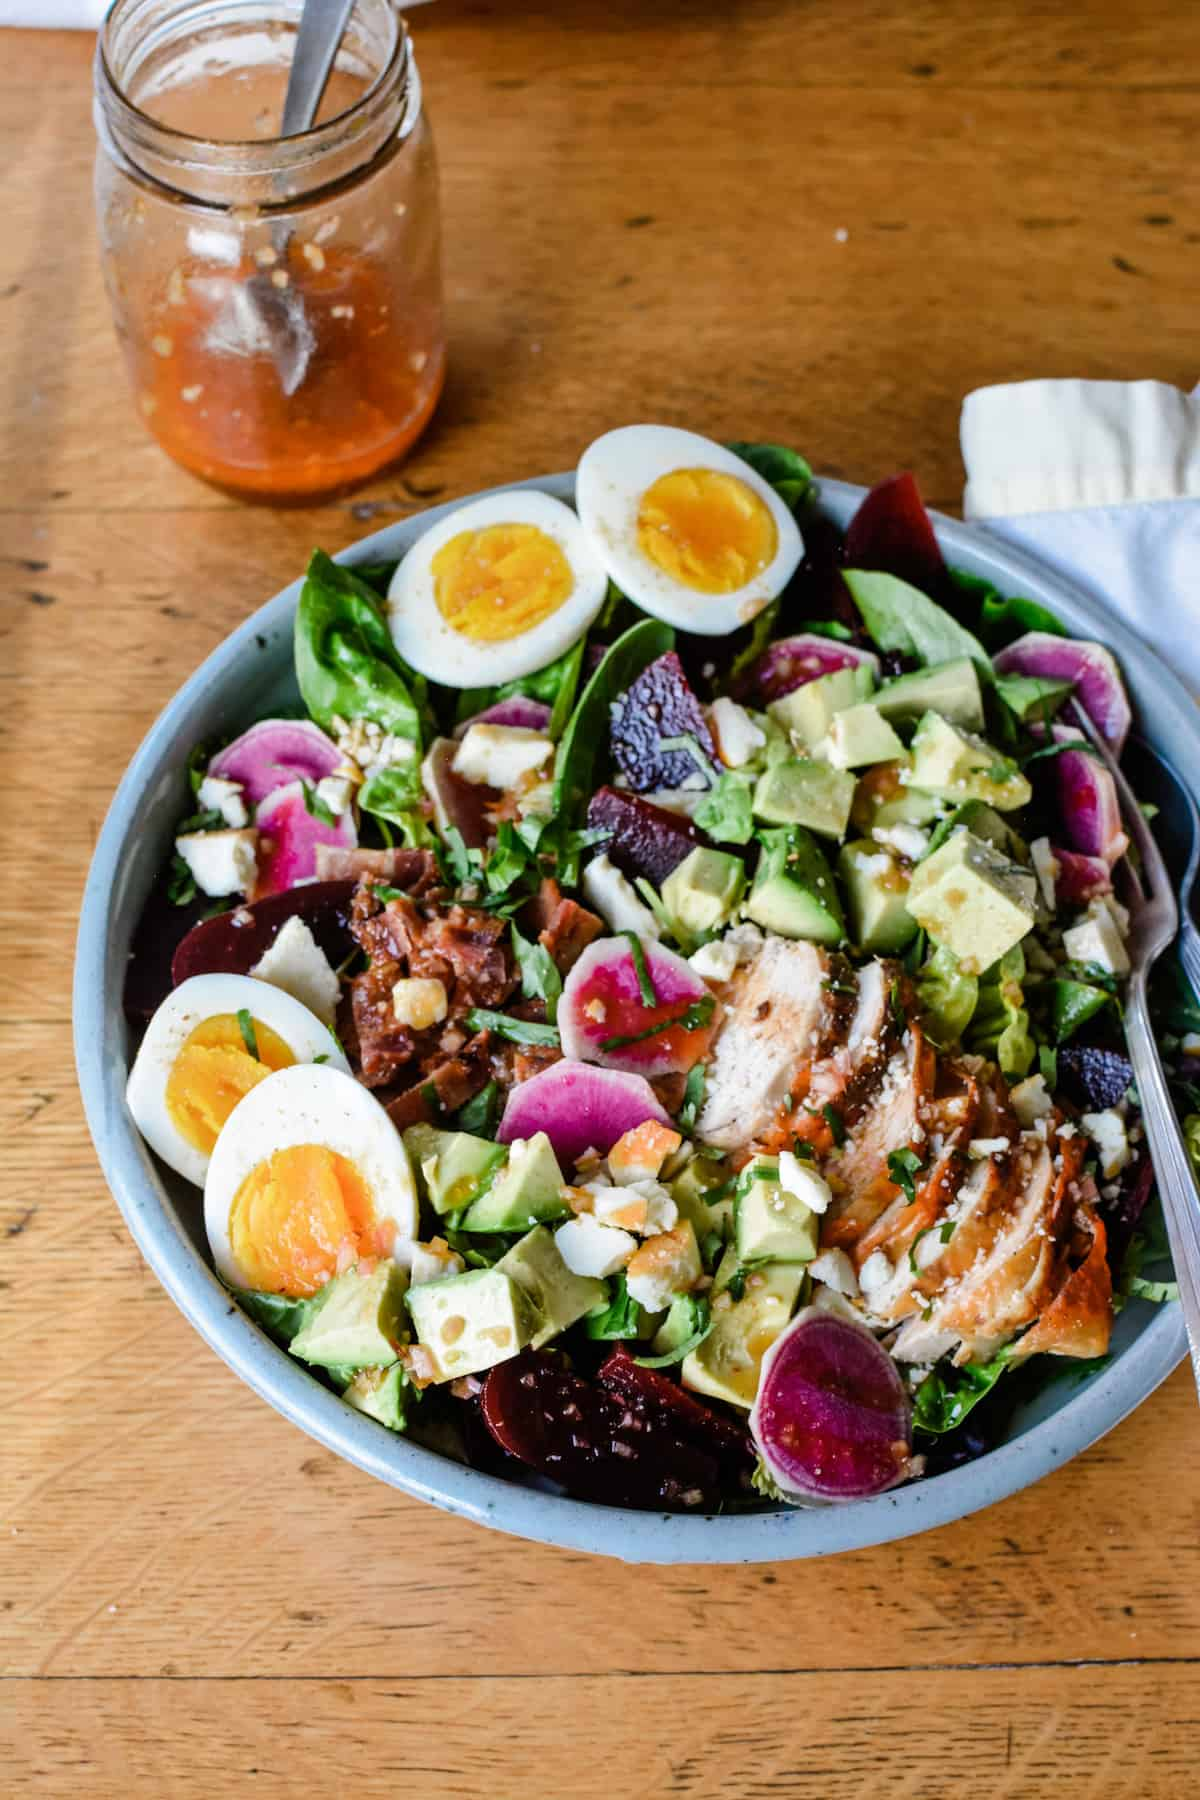 An overhead image of a large salad sitting on a wooden table with a fork in it and a jar of homemade dressing near by.